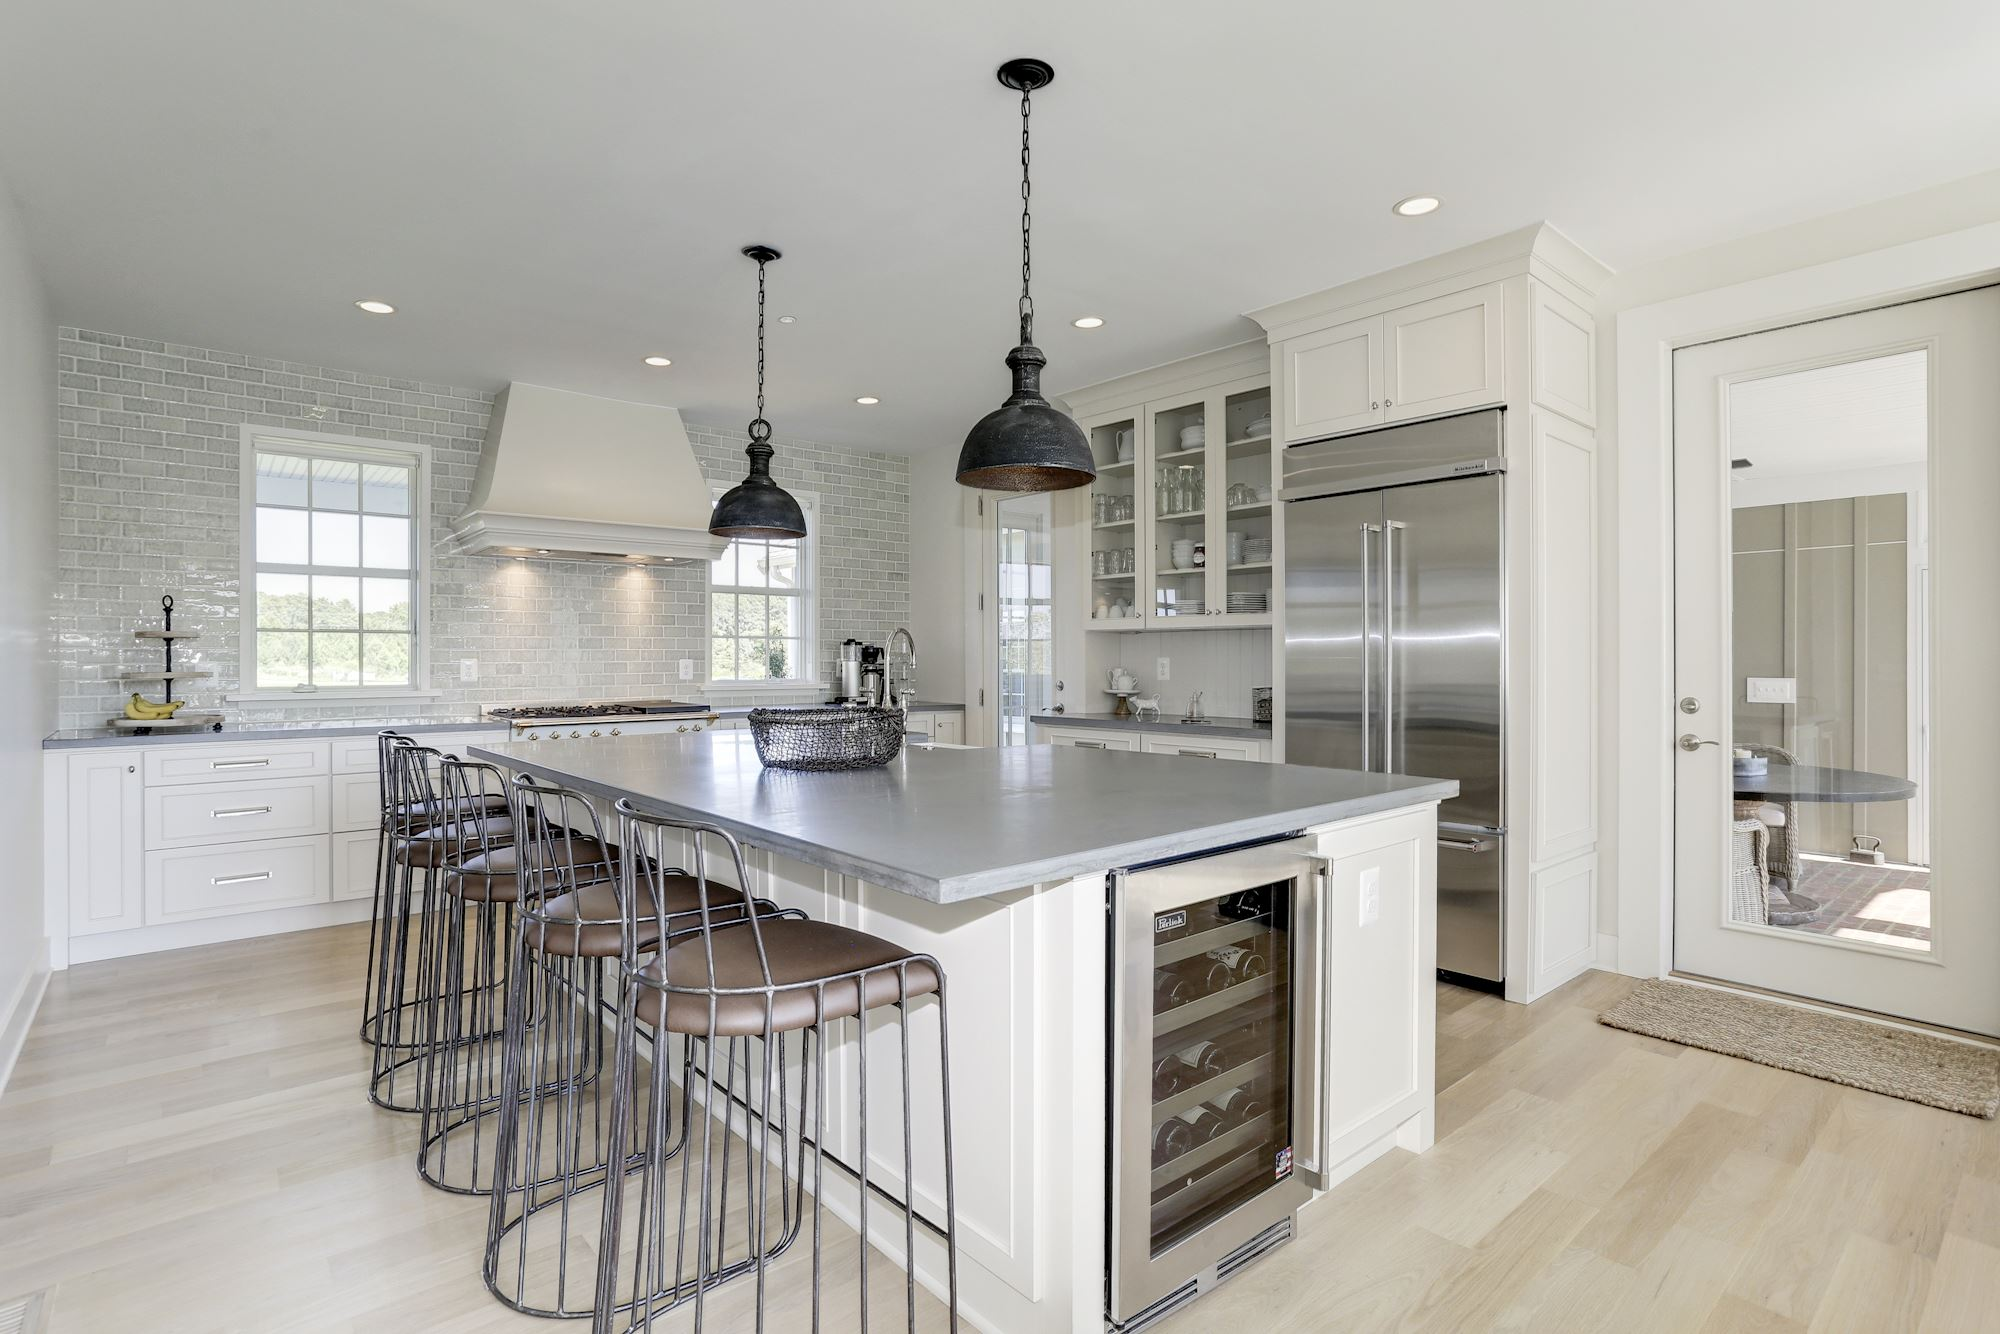 Luxury custom home, kitchen design